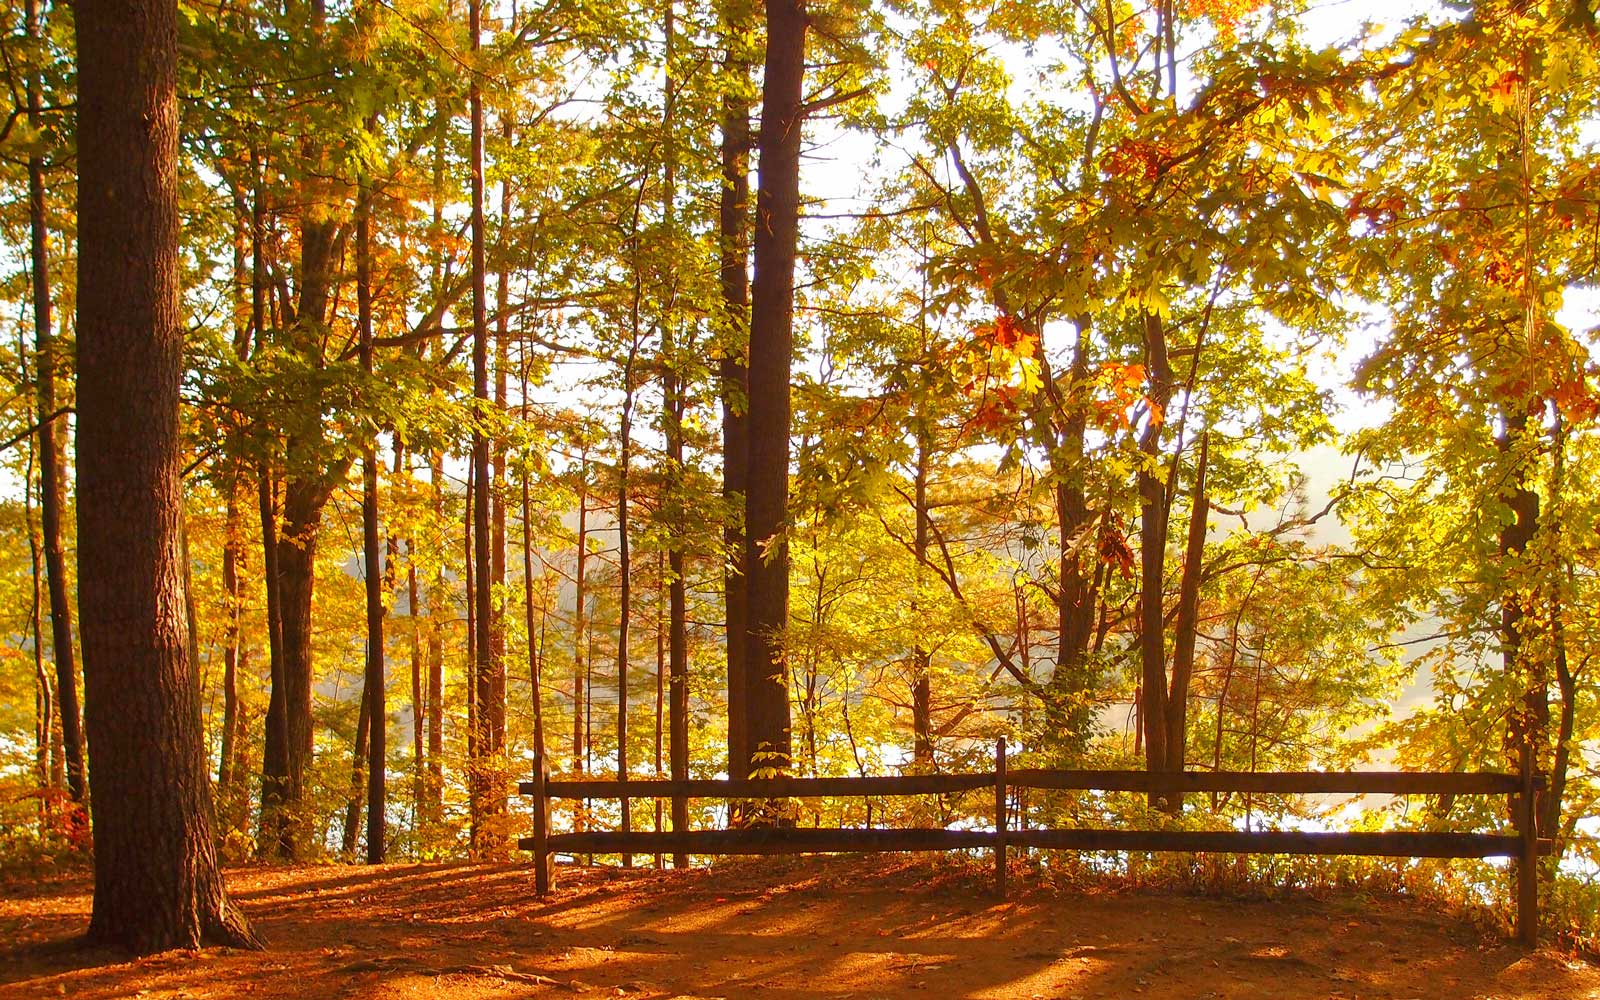 The Best Places to Camp for Gorgeous Fall Foliage Views